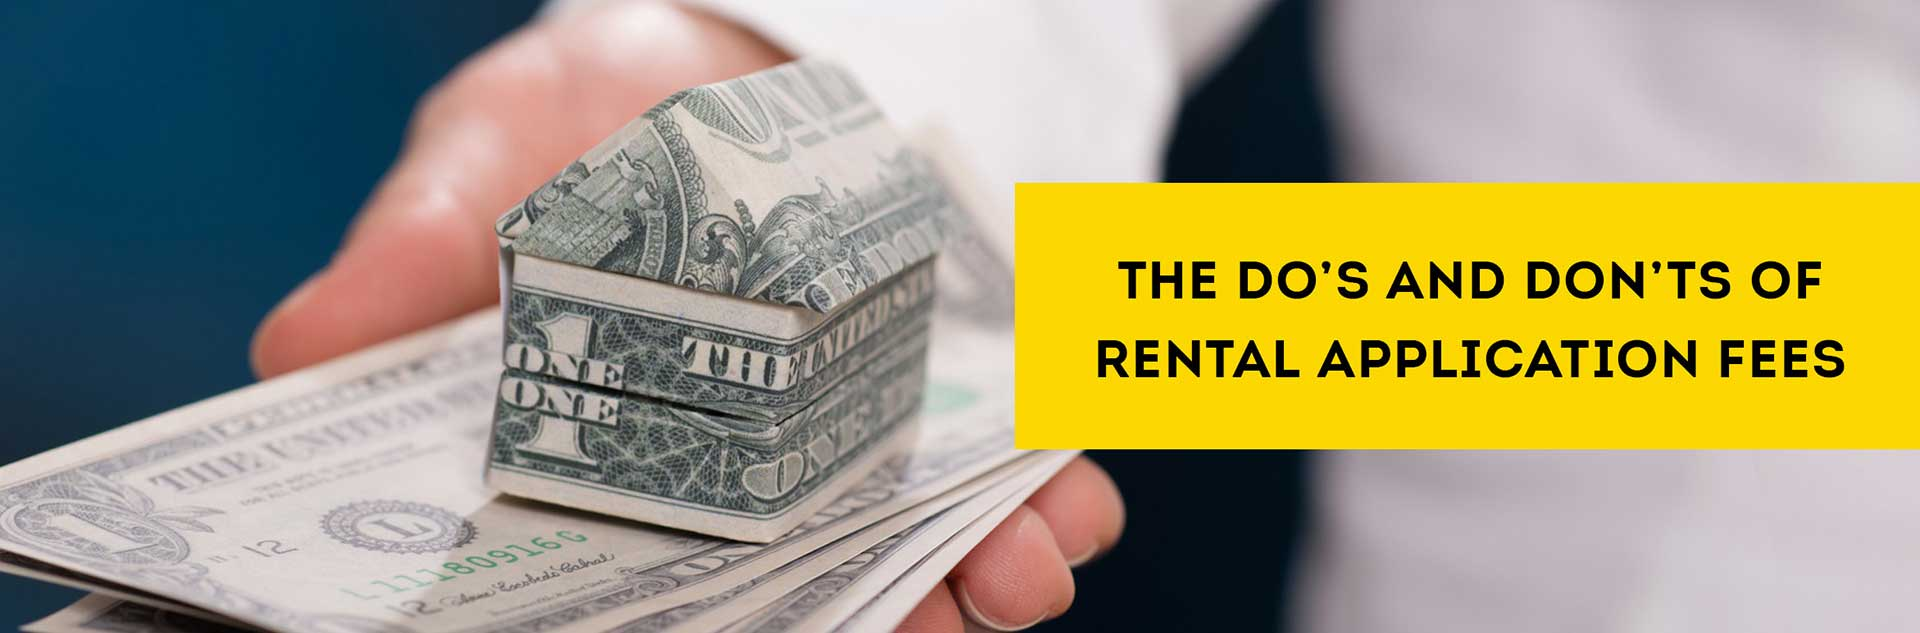 rental application fees best practices